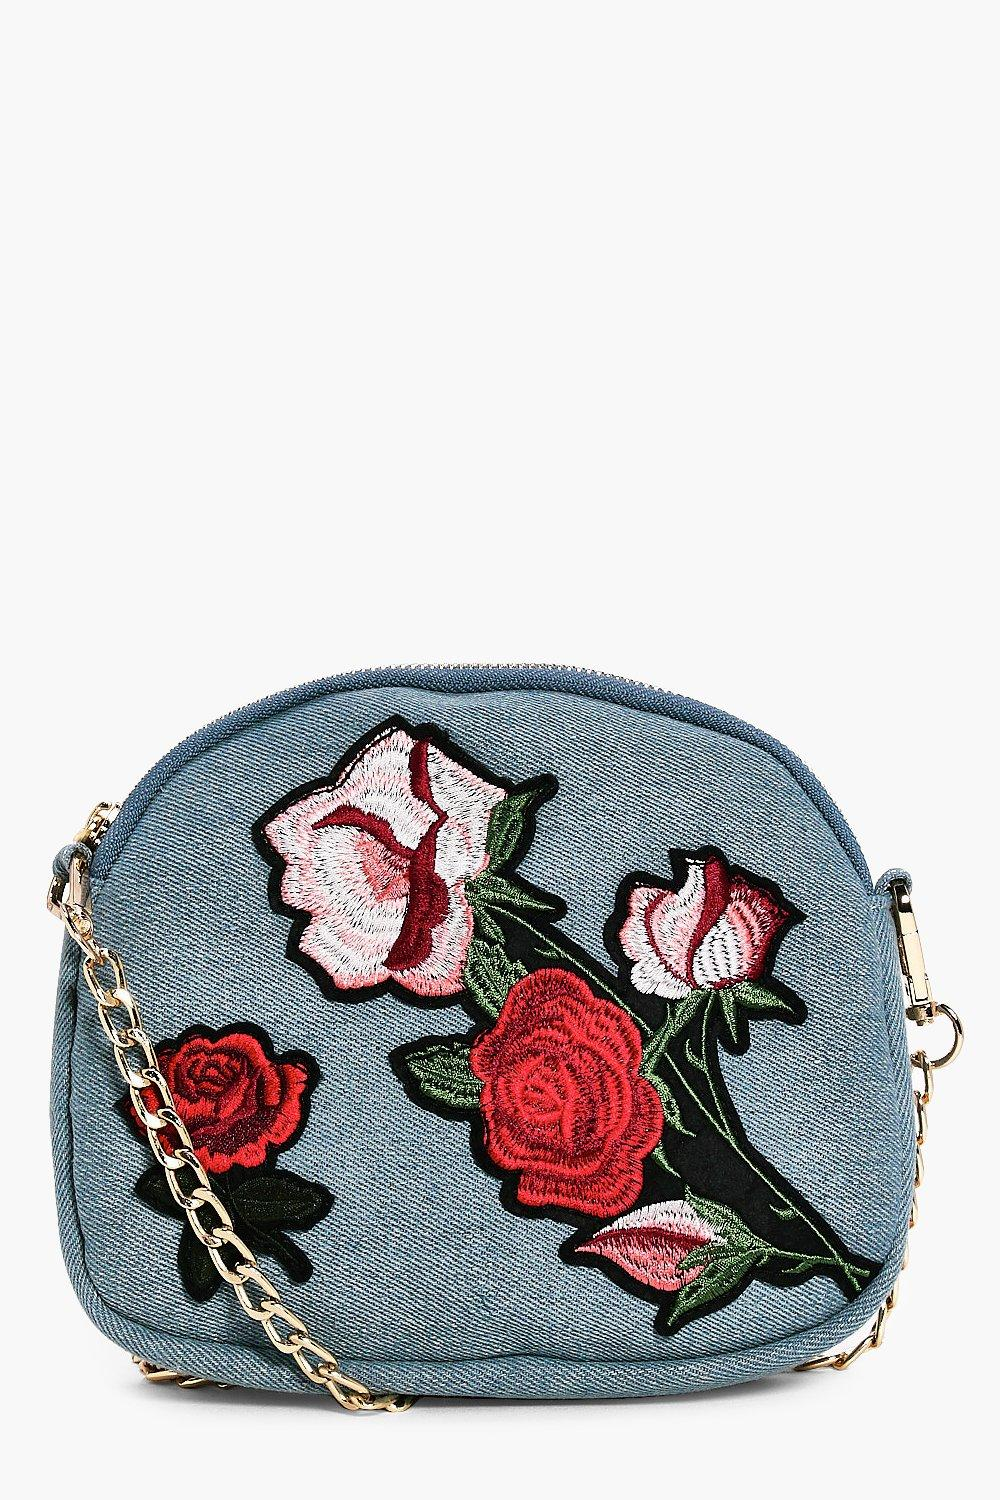 Denim Embroidered Cross Body Bag - blue - Sofia De